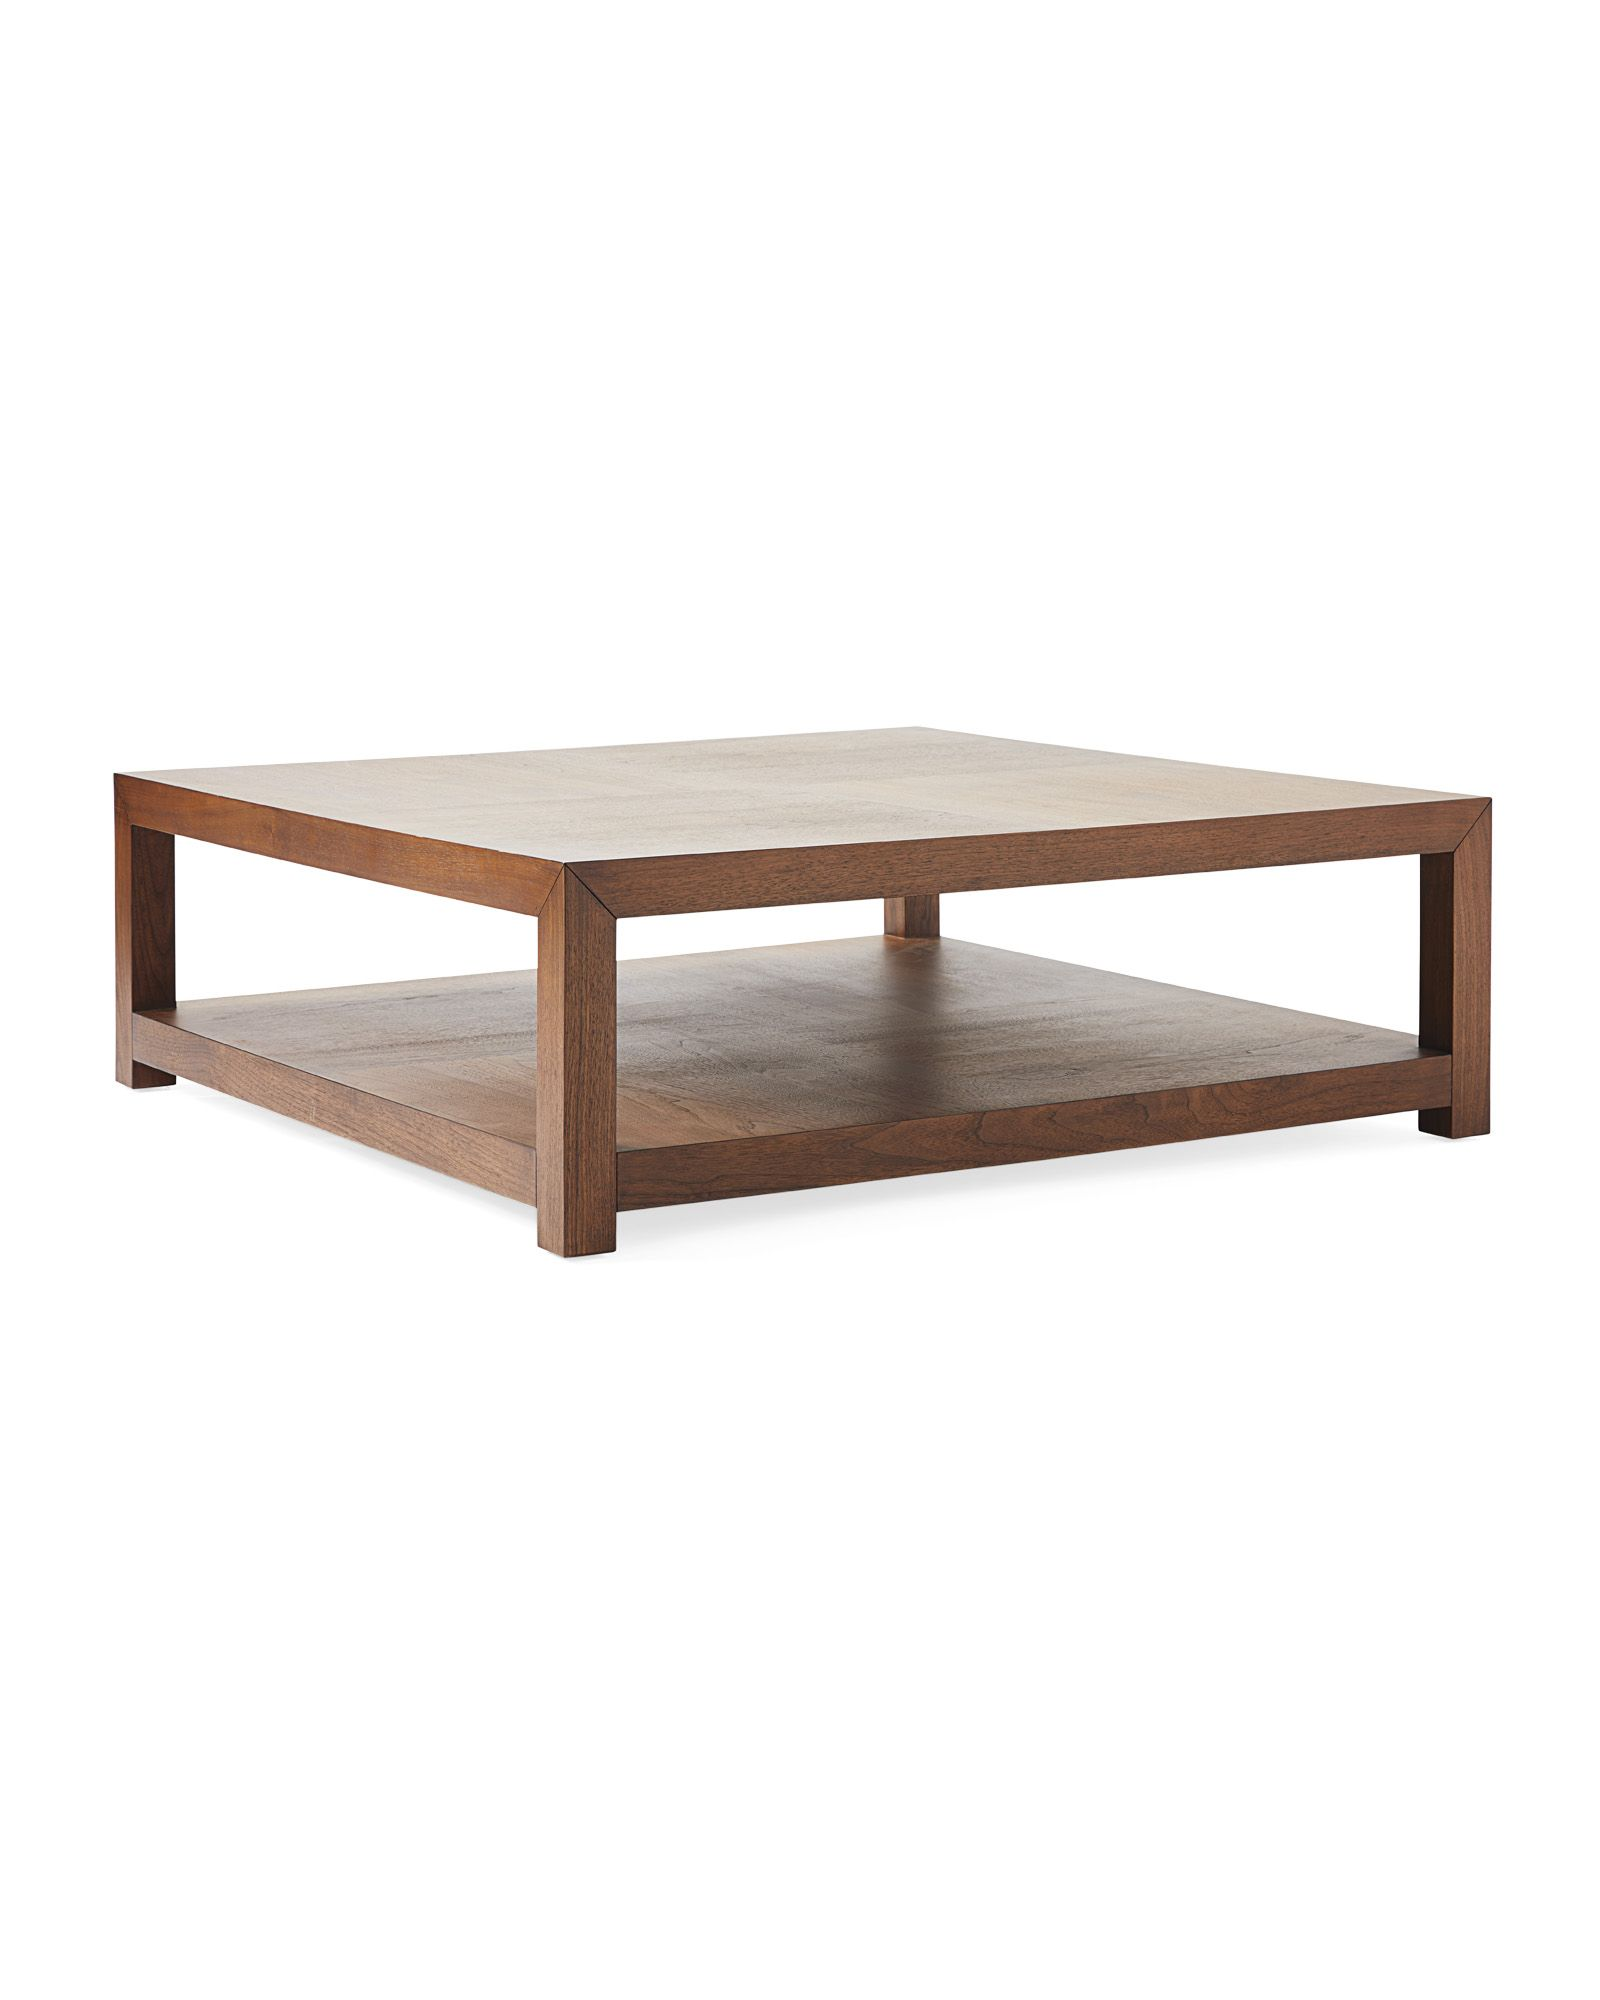 Serena Lily Lyon Coffee Table In 2020 Unique Coffee Table Large Square Coffee Table Oversized Coffee Table [ 2000 x 1600 Pixel ]